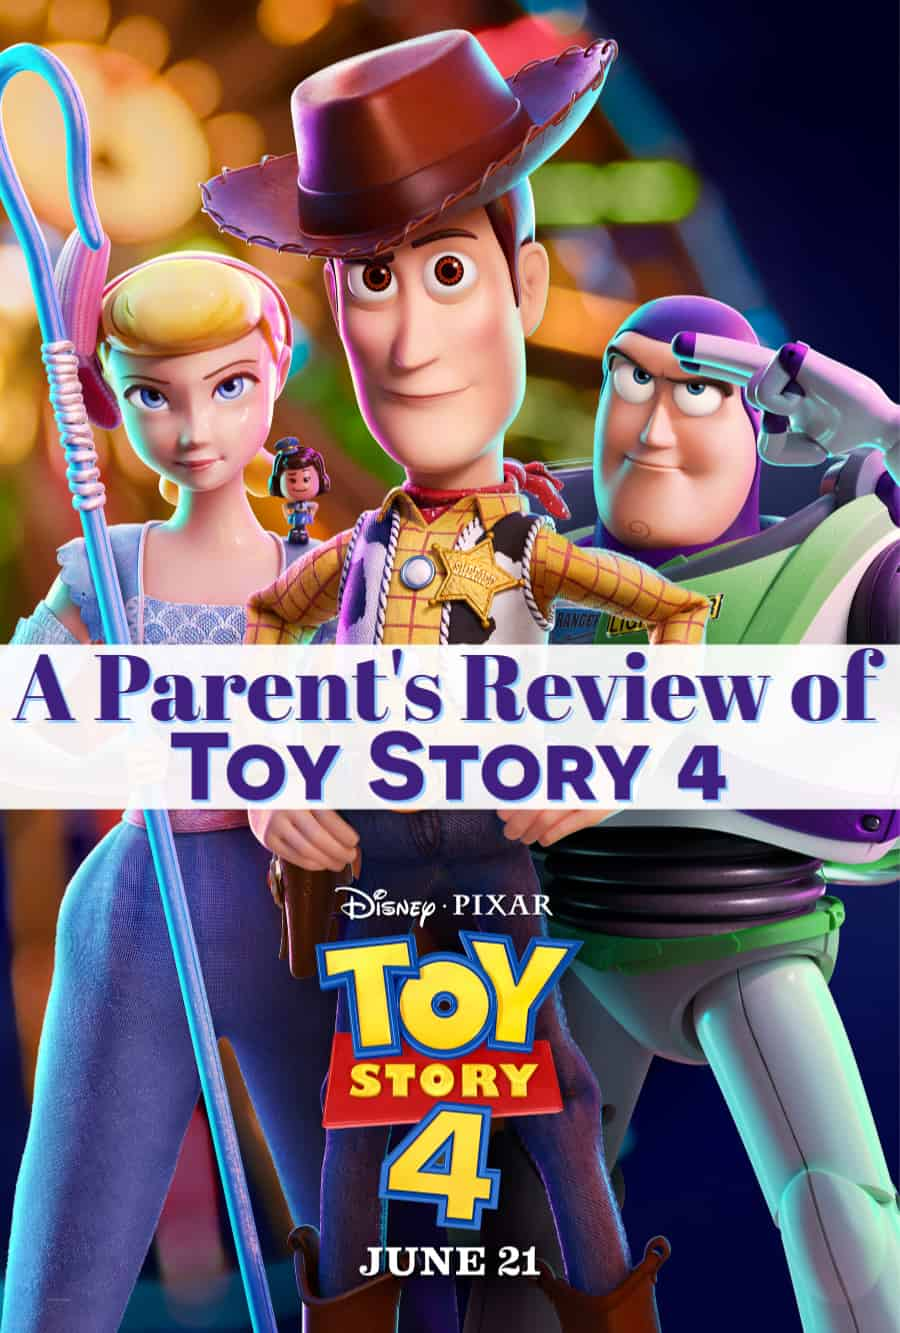 Toy Story 4 parent review guide